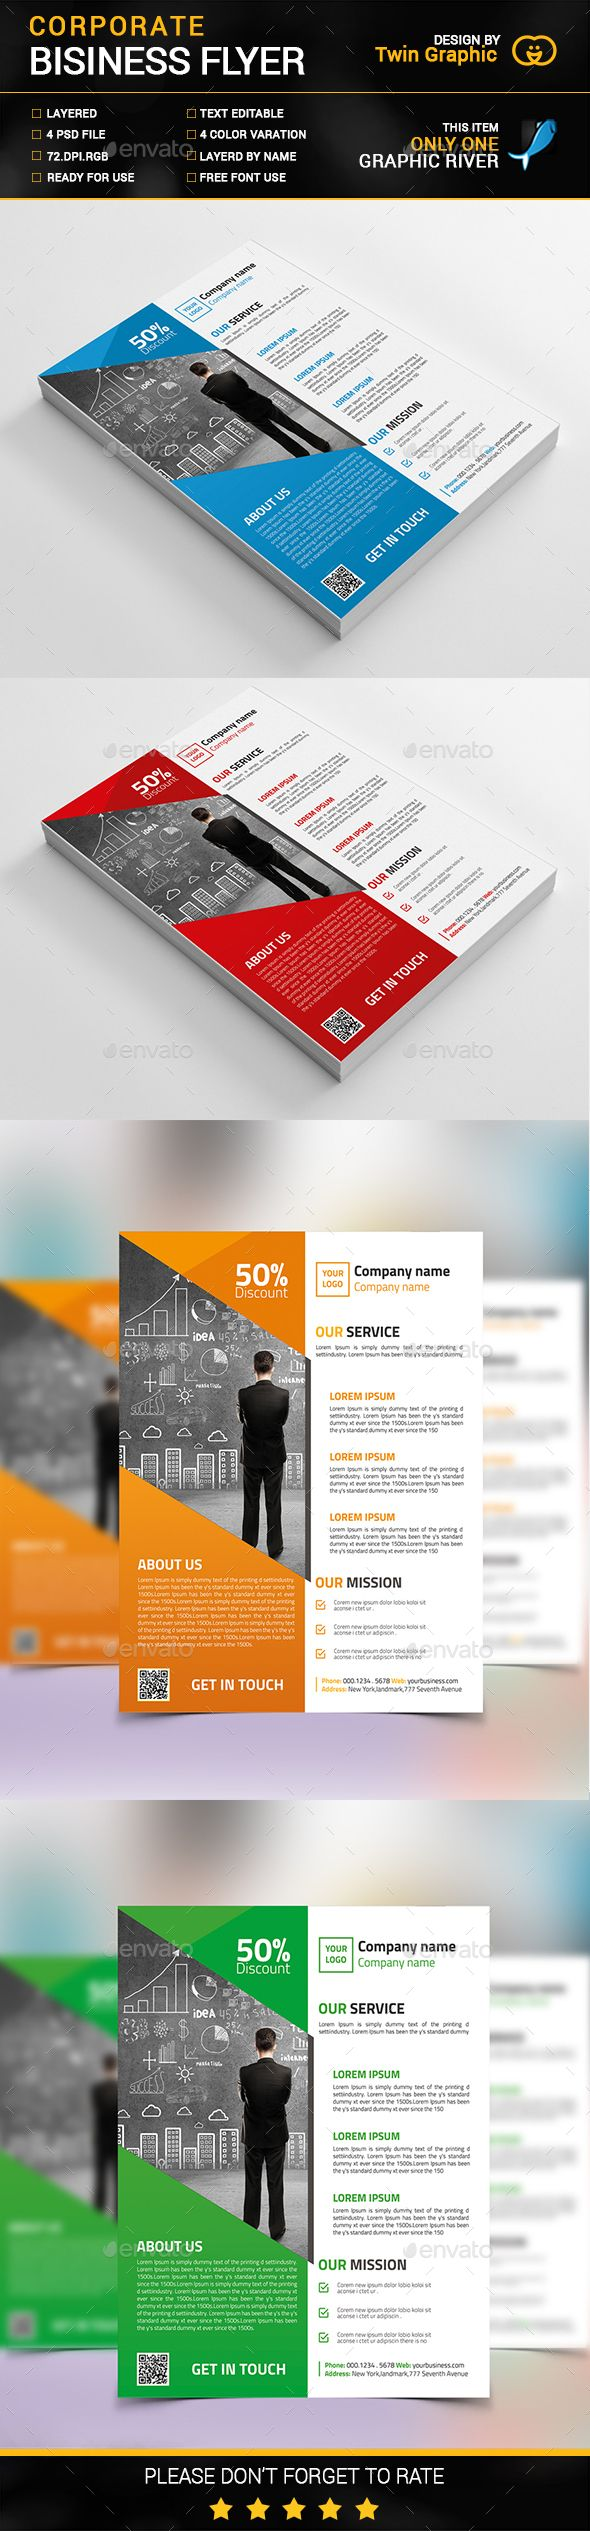 business infographic corporate business flyer design template psd download here graphicrivernet